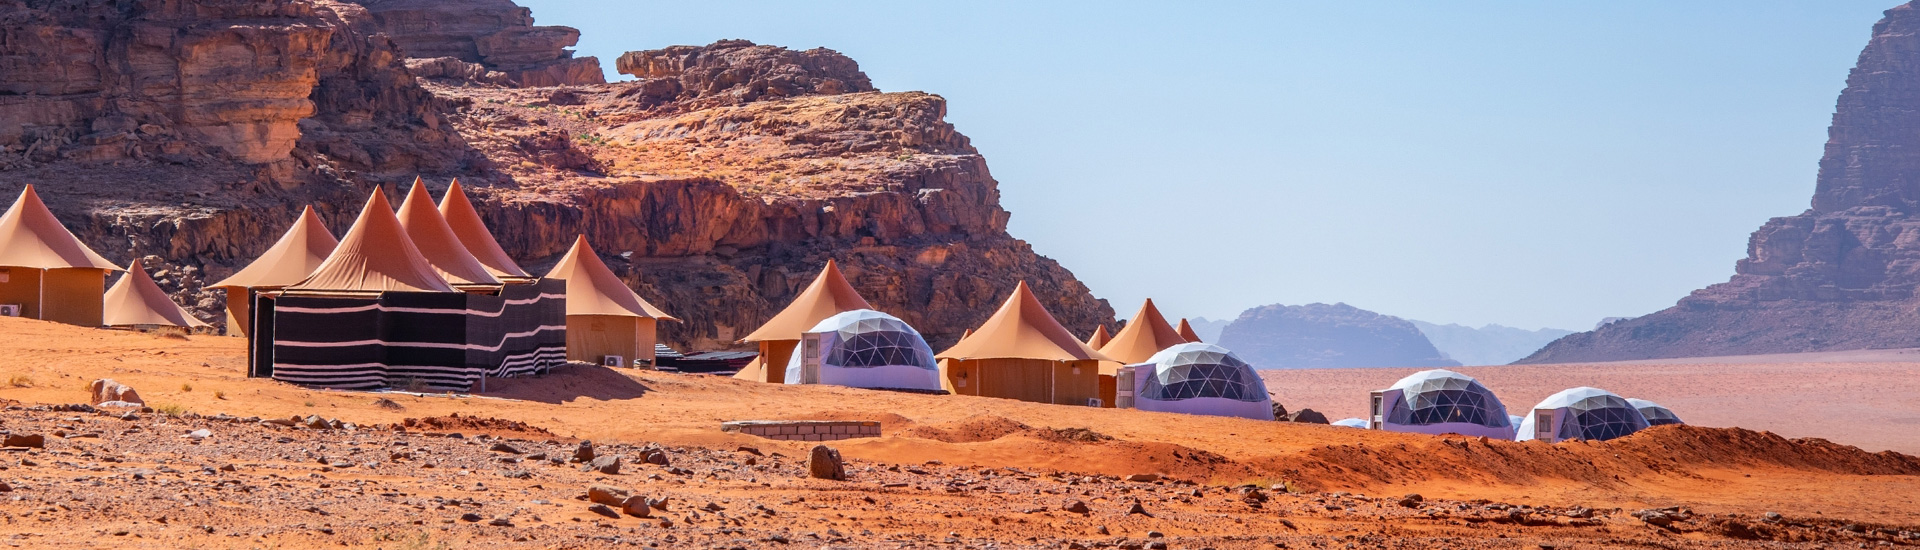 Visiting Jordan is an experience of a lifetime.